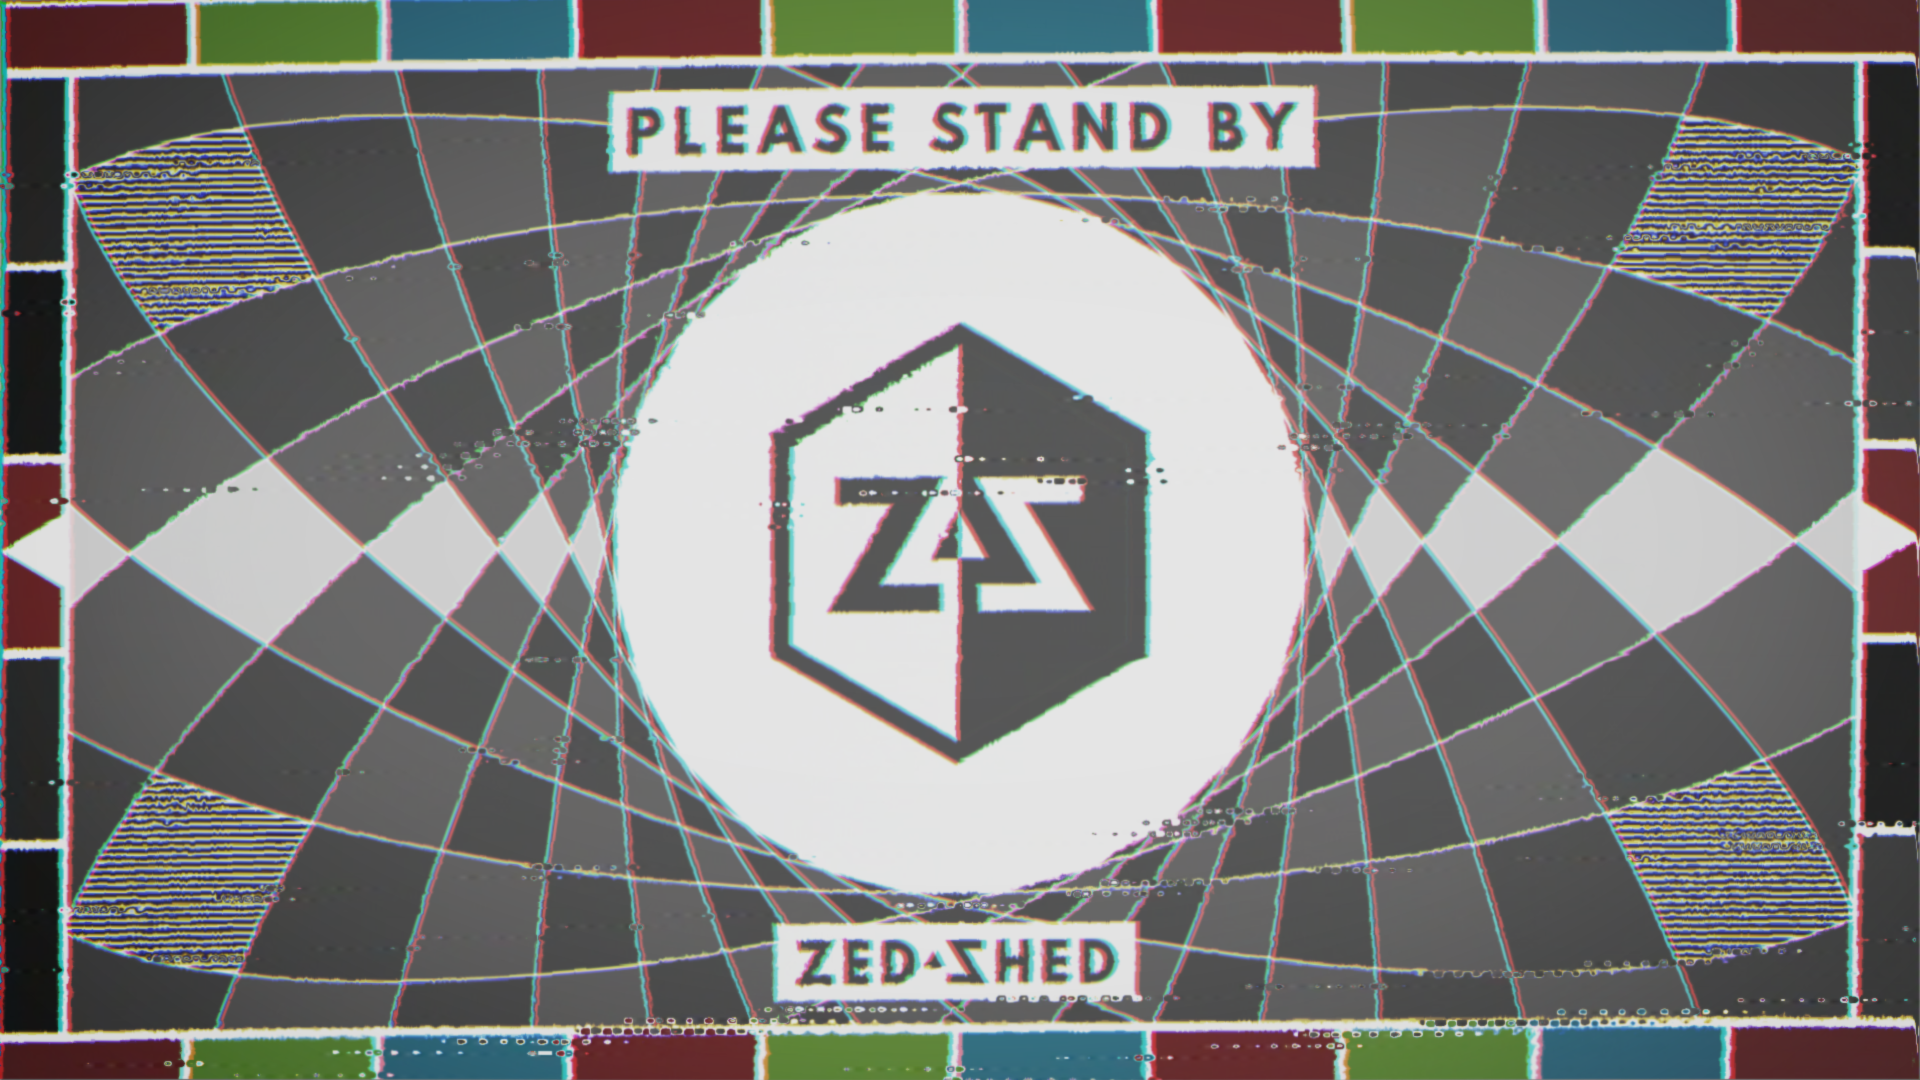 Zubr youtube channel ZEDShed please stand by